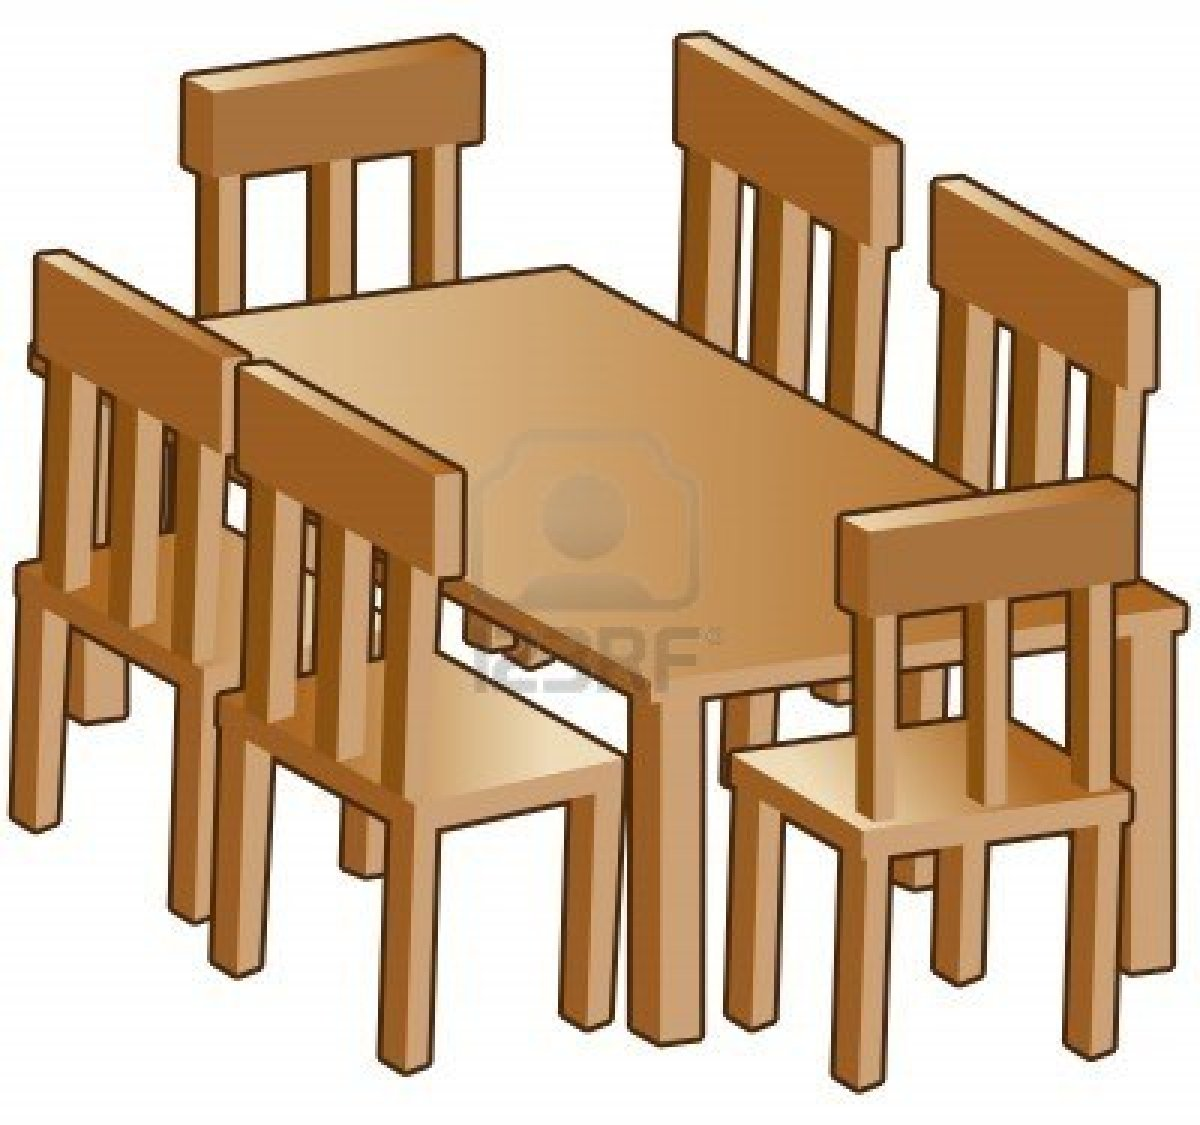 hight resolution of furniture clipart dining room furniture clip art